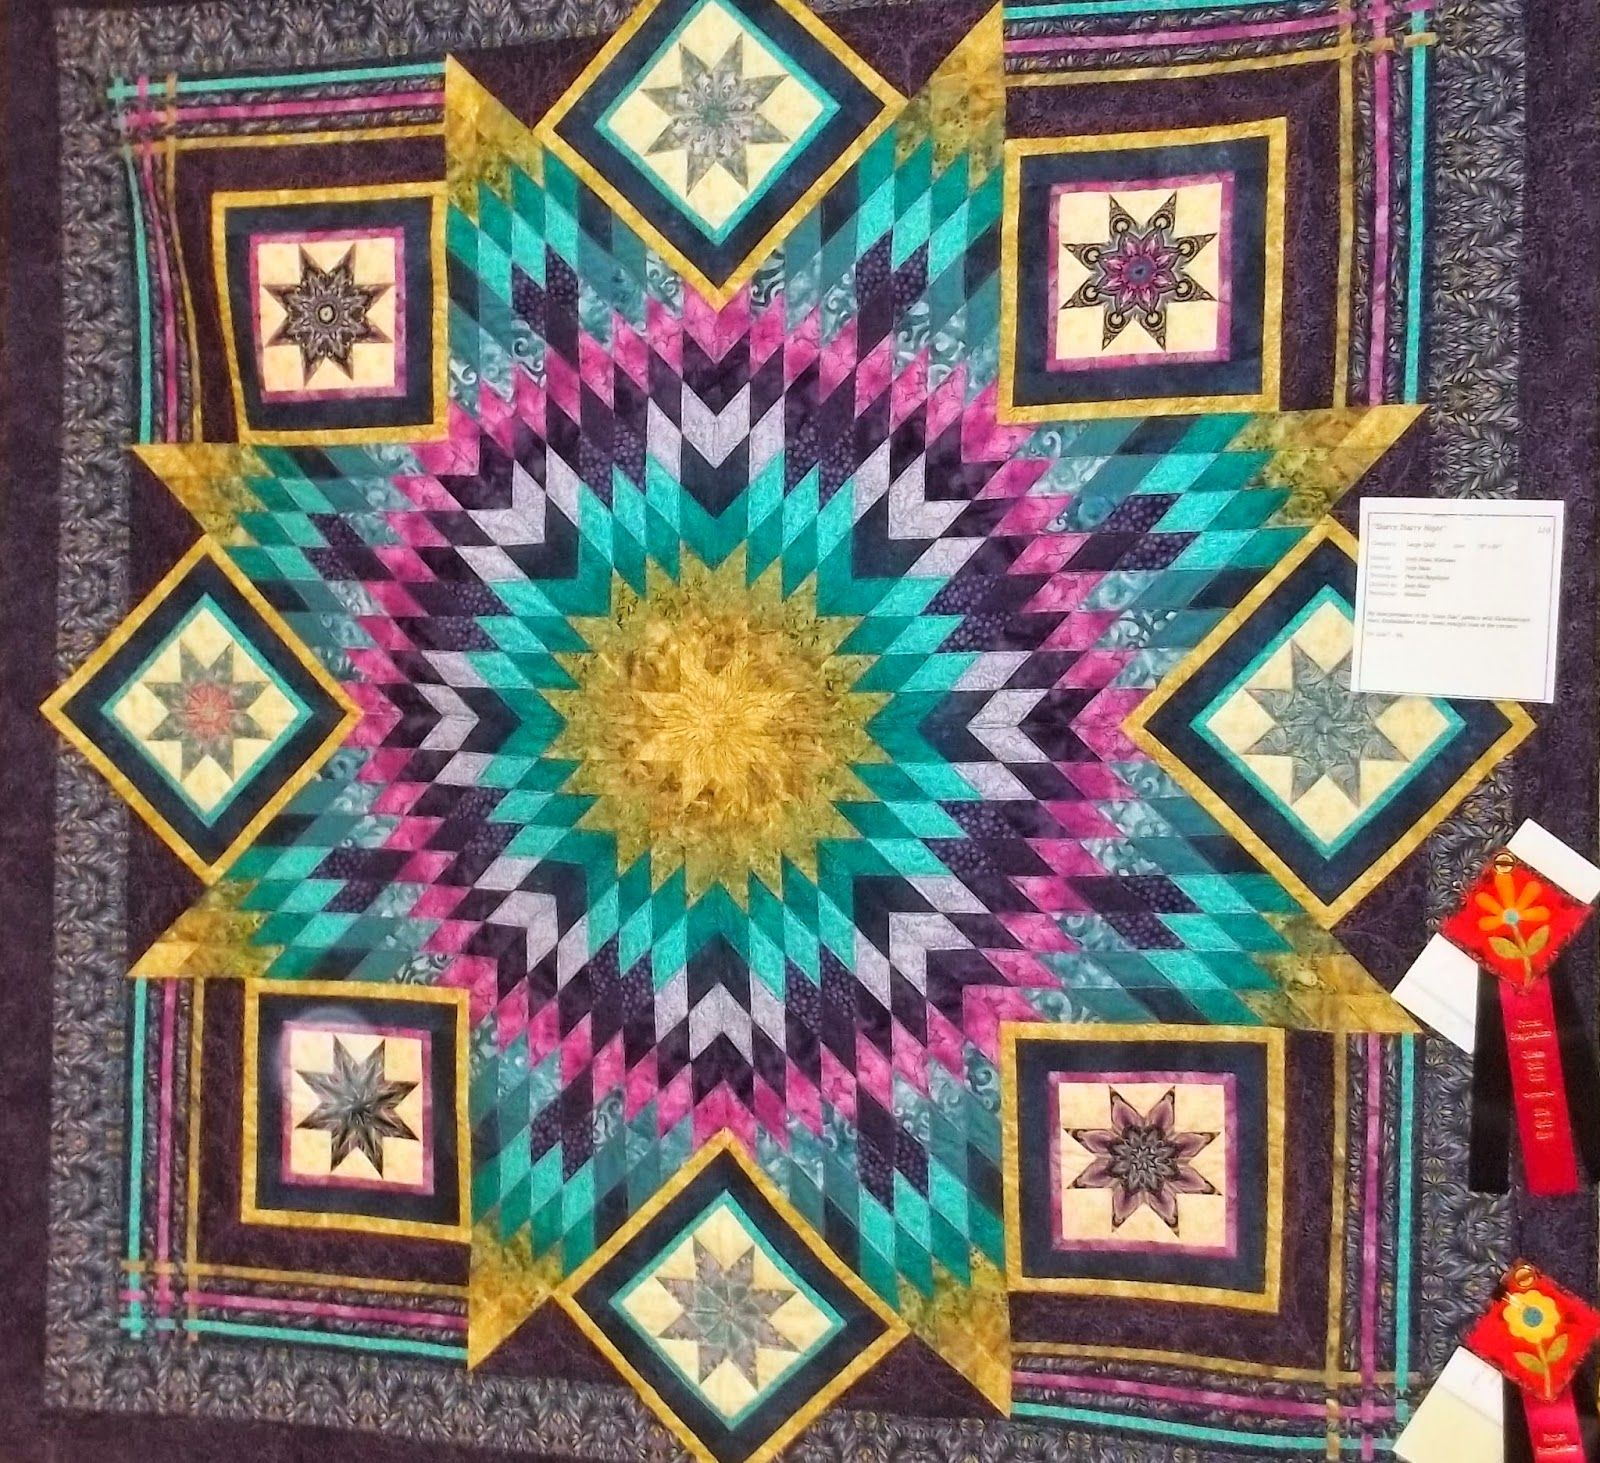 Prairie Cottage Corner - Home of Sunbonnet Sue and Friends: Guess Who Won a Ribbon at the Annual Odessa Quilt Show?